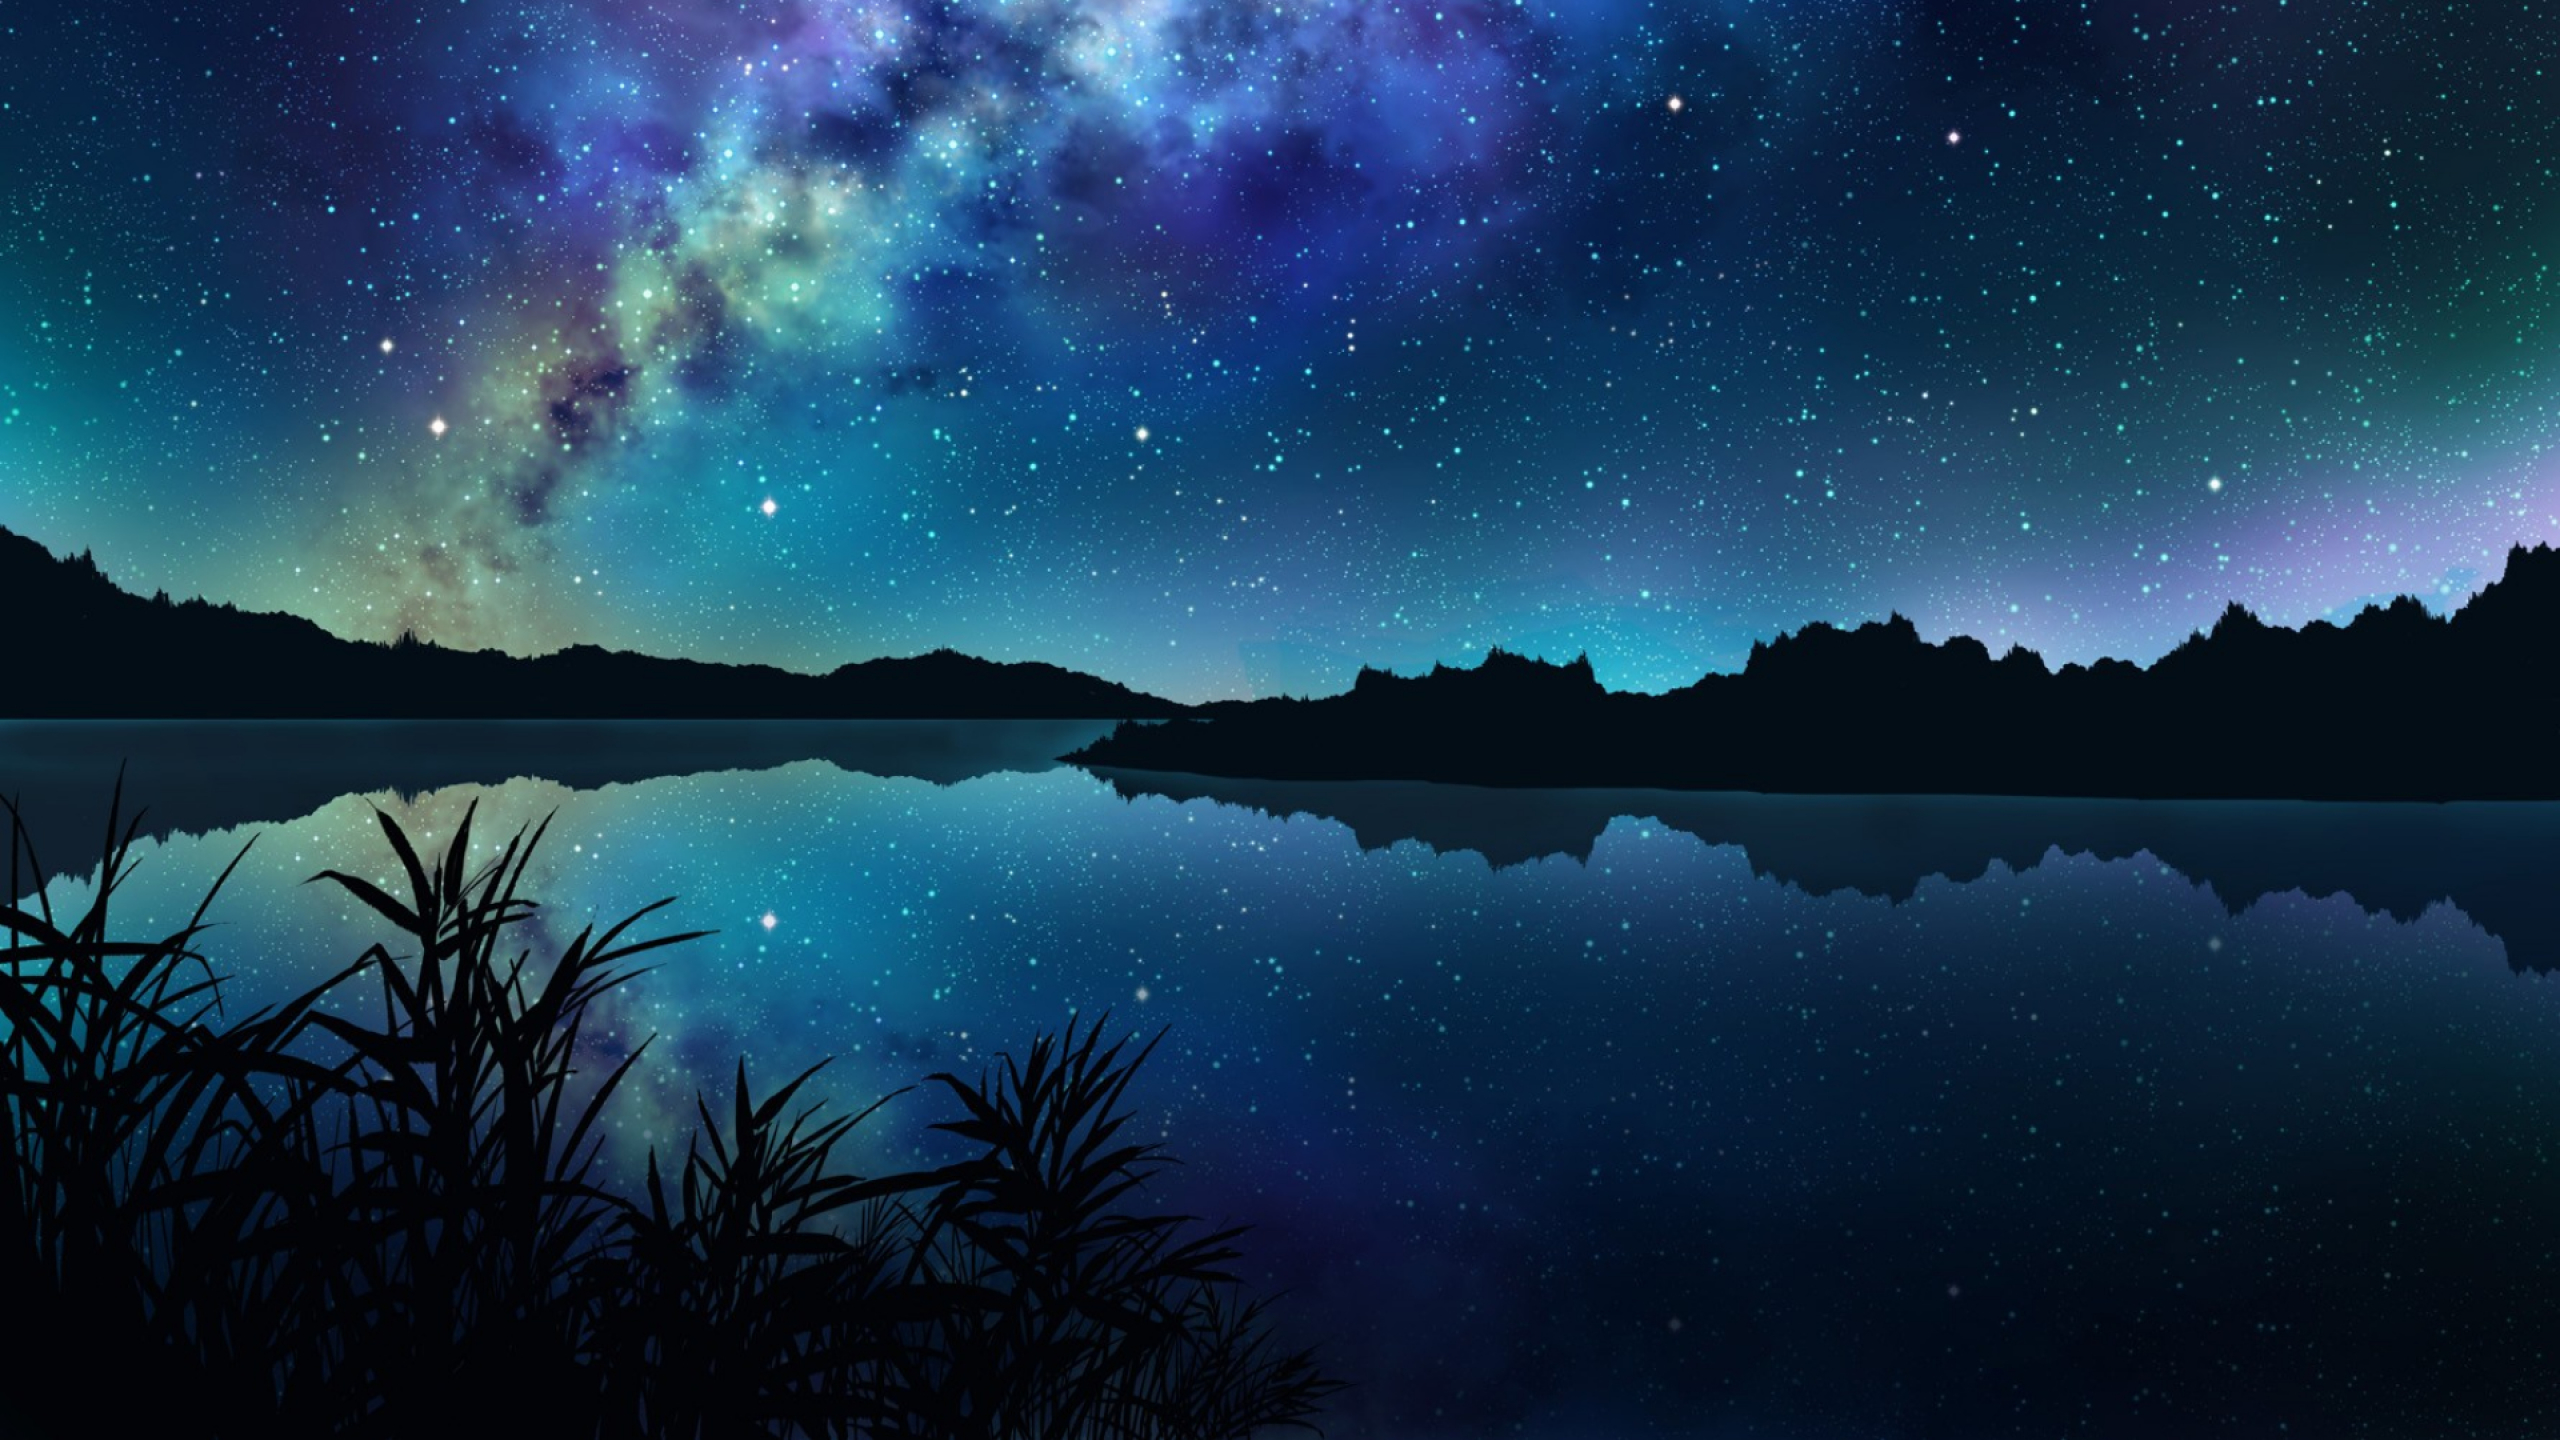 2560x1440 Amazing Starry Night Over Mountains and River ...